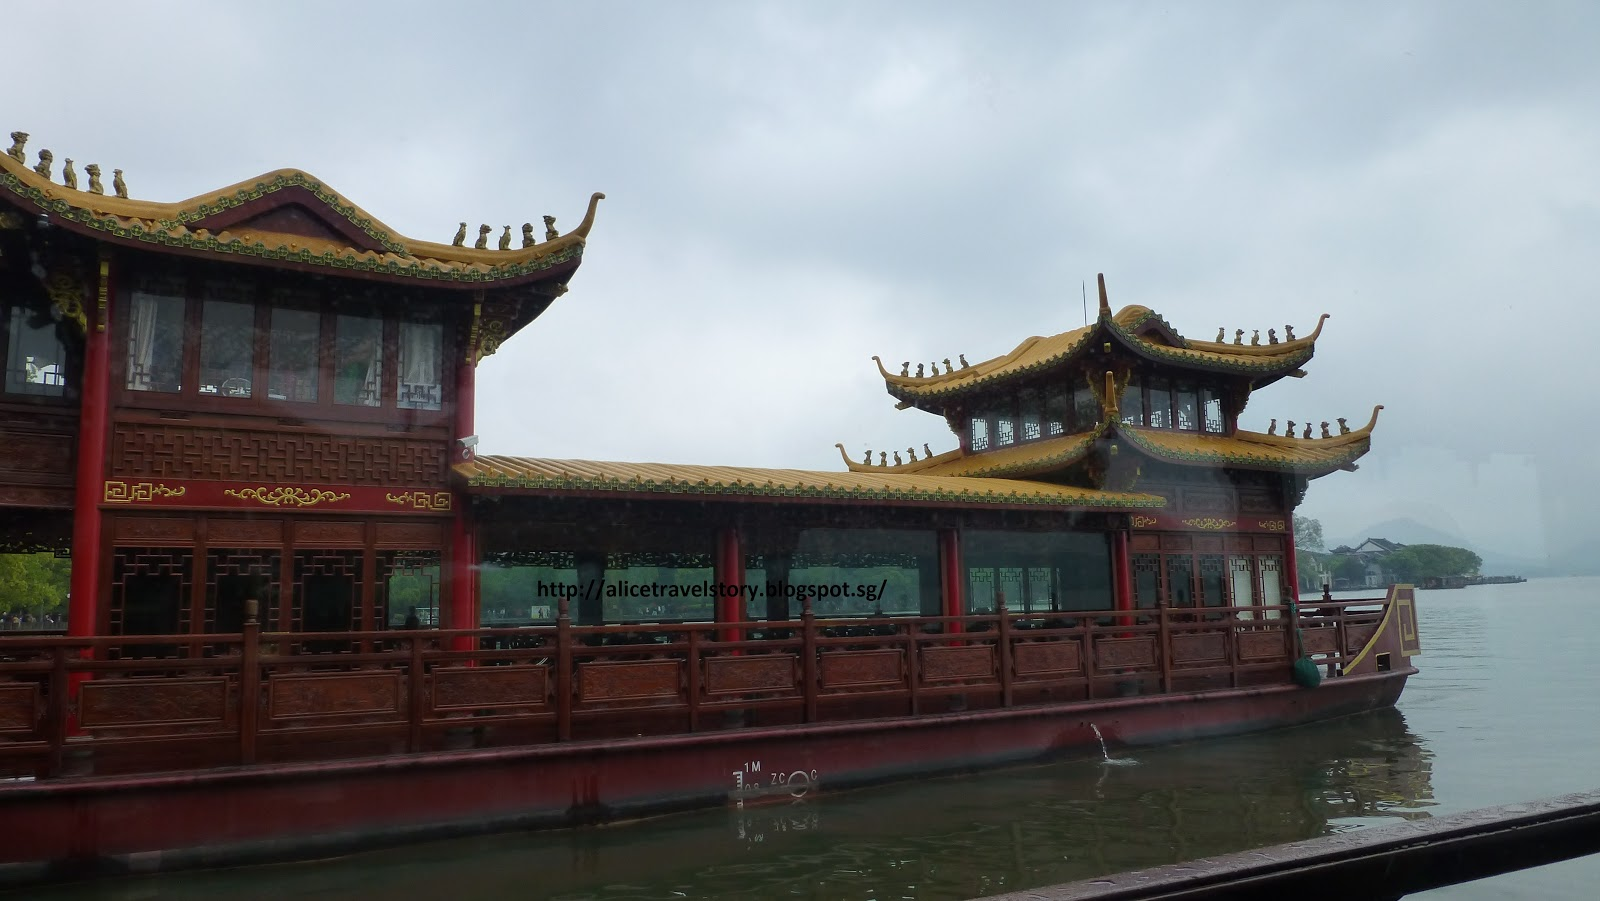 three day family trip to hangzhou This package tour gives visitors the chance to experience the best of hangzhou, long lauded as one of the most beautiful cities in china featuring prominently in this trip is hangzhou's west lake, a unesco world heritage site that has inspired painters and poets from all over china for centuries.